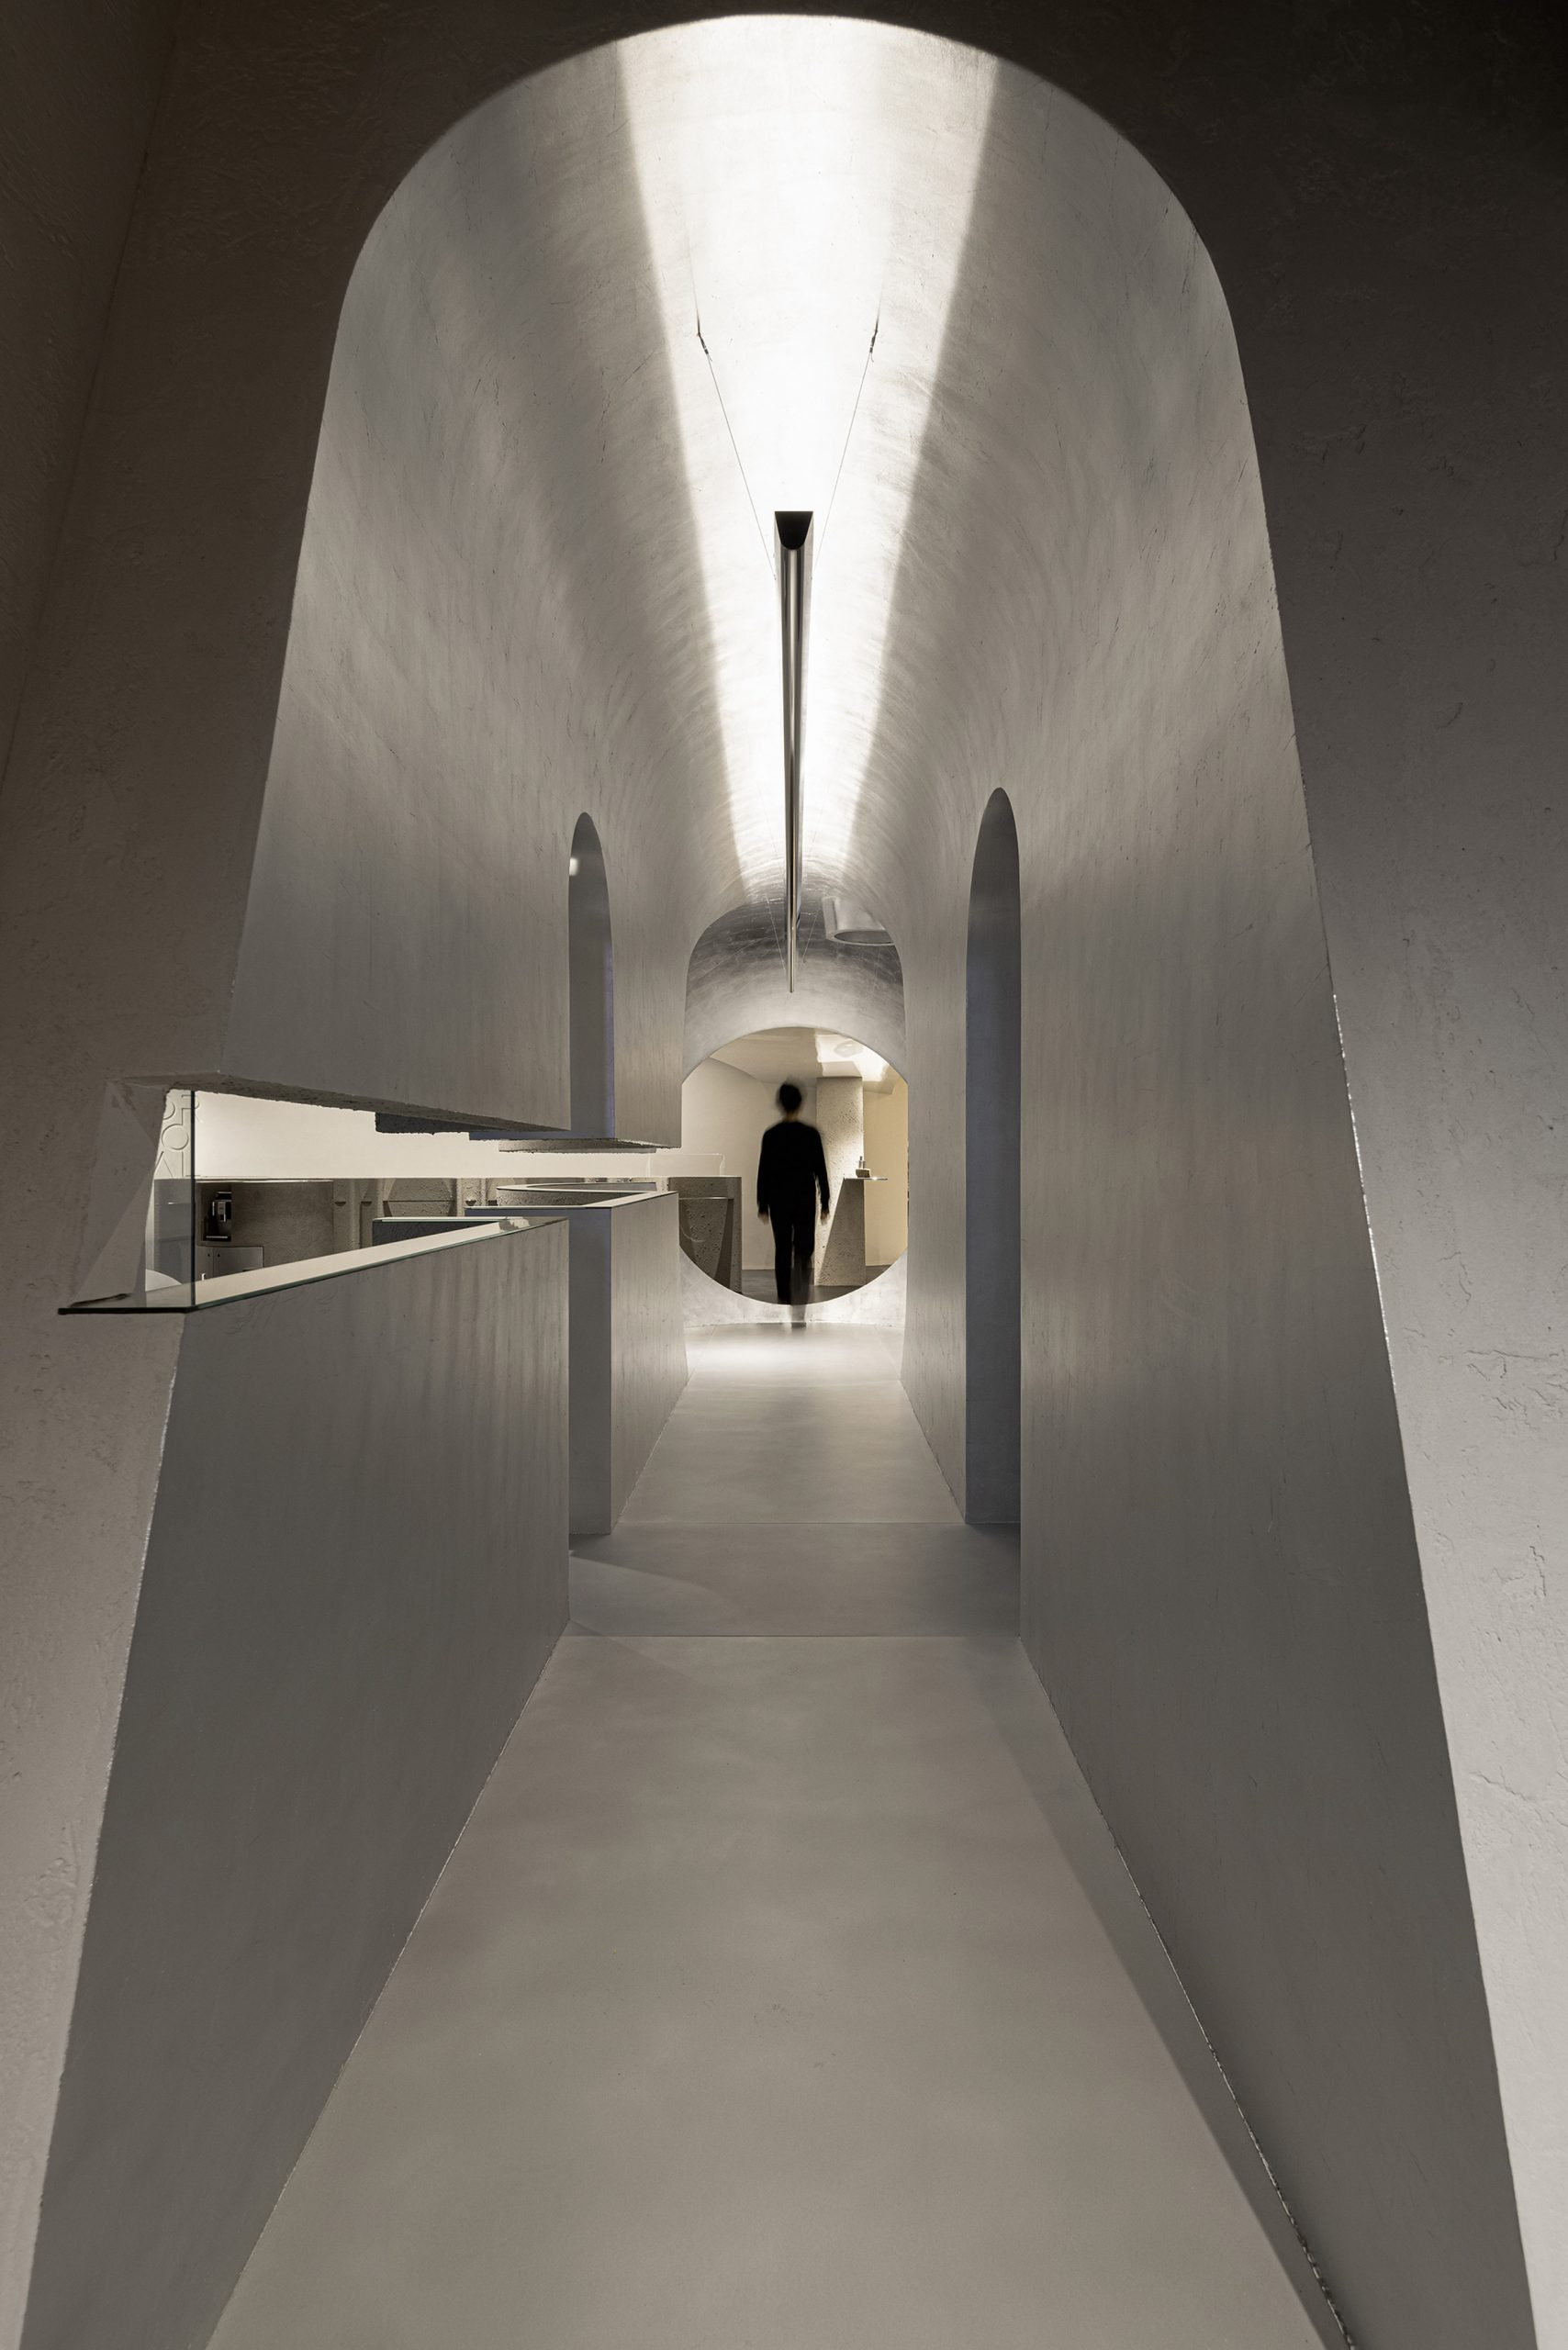 Tunnel in Lilawlab-designed store